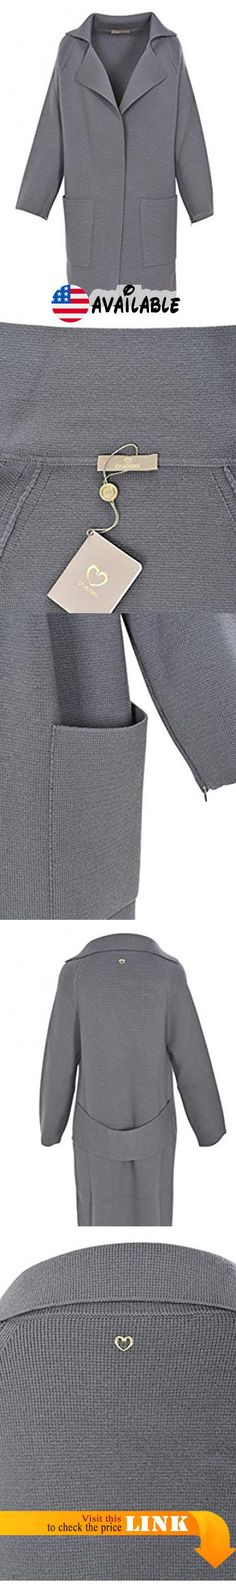 B077HTR6QS : Cruciani Cardigan Women's Gray Regular Fit Wool Casual 42 IT. Brand: Cruciani   Size EU: 42 IT   Size UK:. Color: Gray   Made in: IT   Fit Type: Regular Fit. Lifestyle: Casual   Pattern Type: Plain   Closure Type:. Material: Wool Wool.  More information in the product description  #Apparel #SWEATER